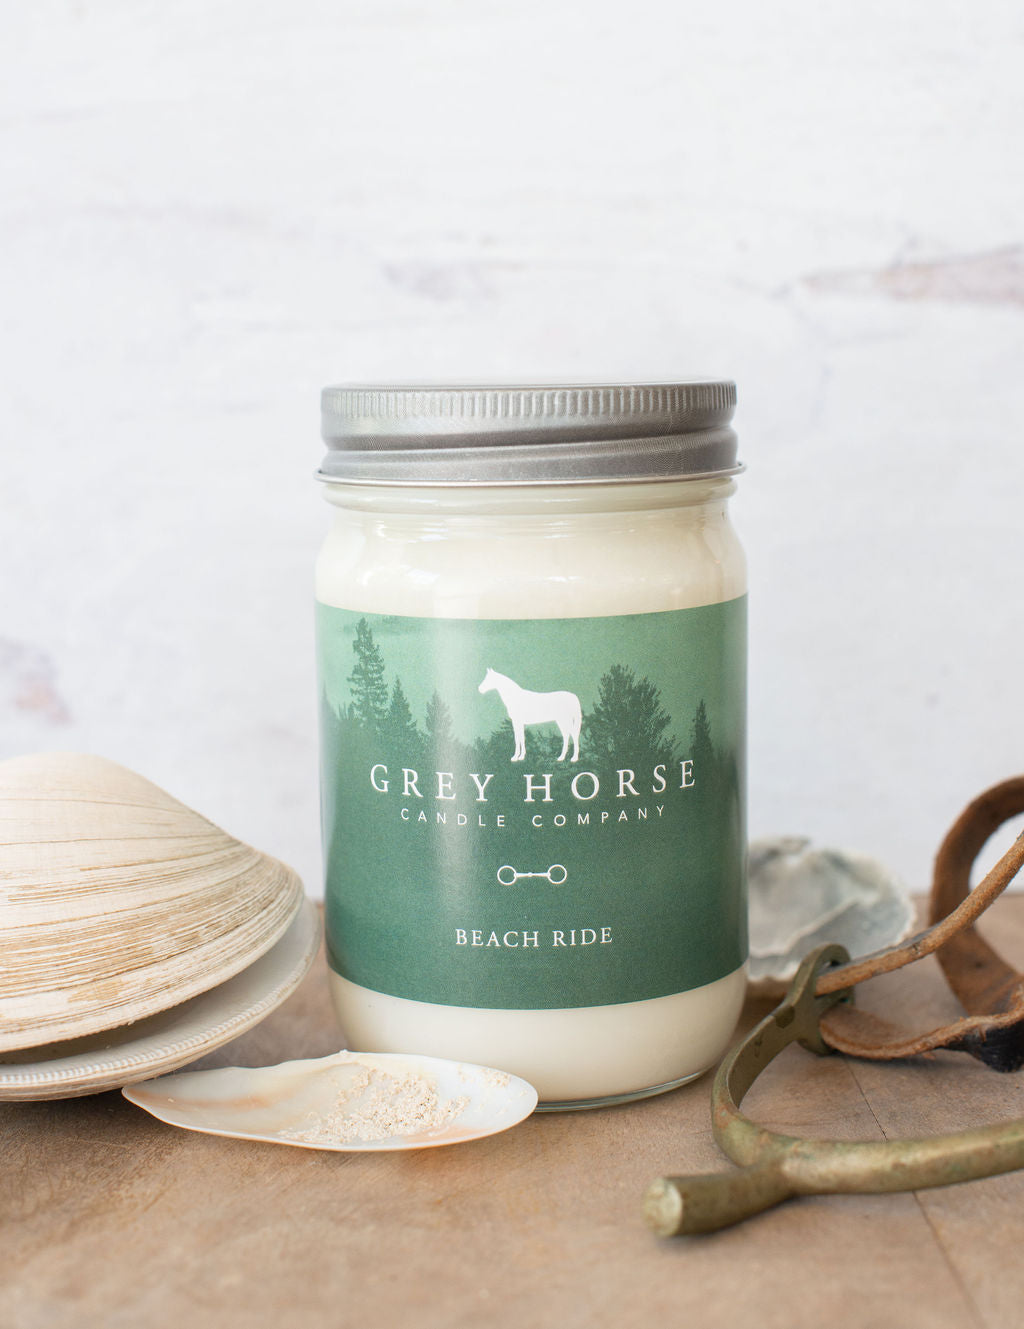 Grey Horse Candle Company Soy Candle- Beach Ride